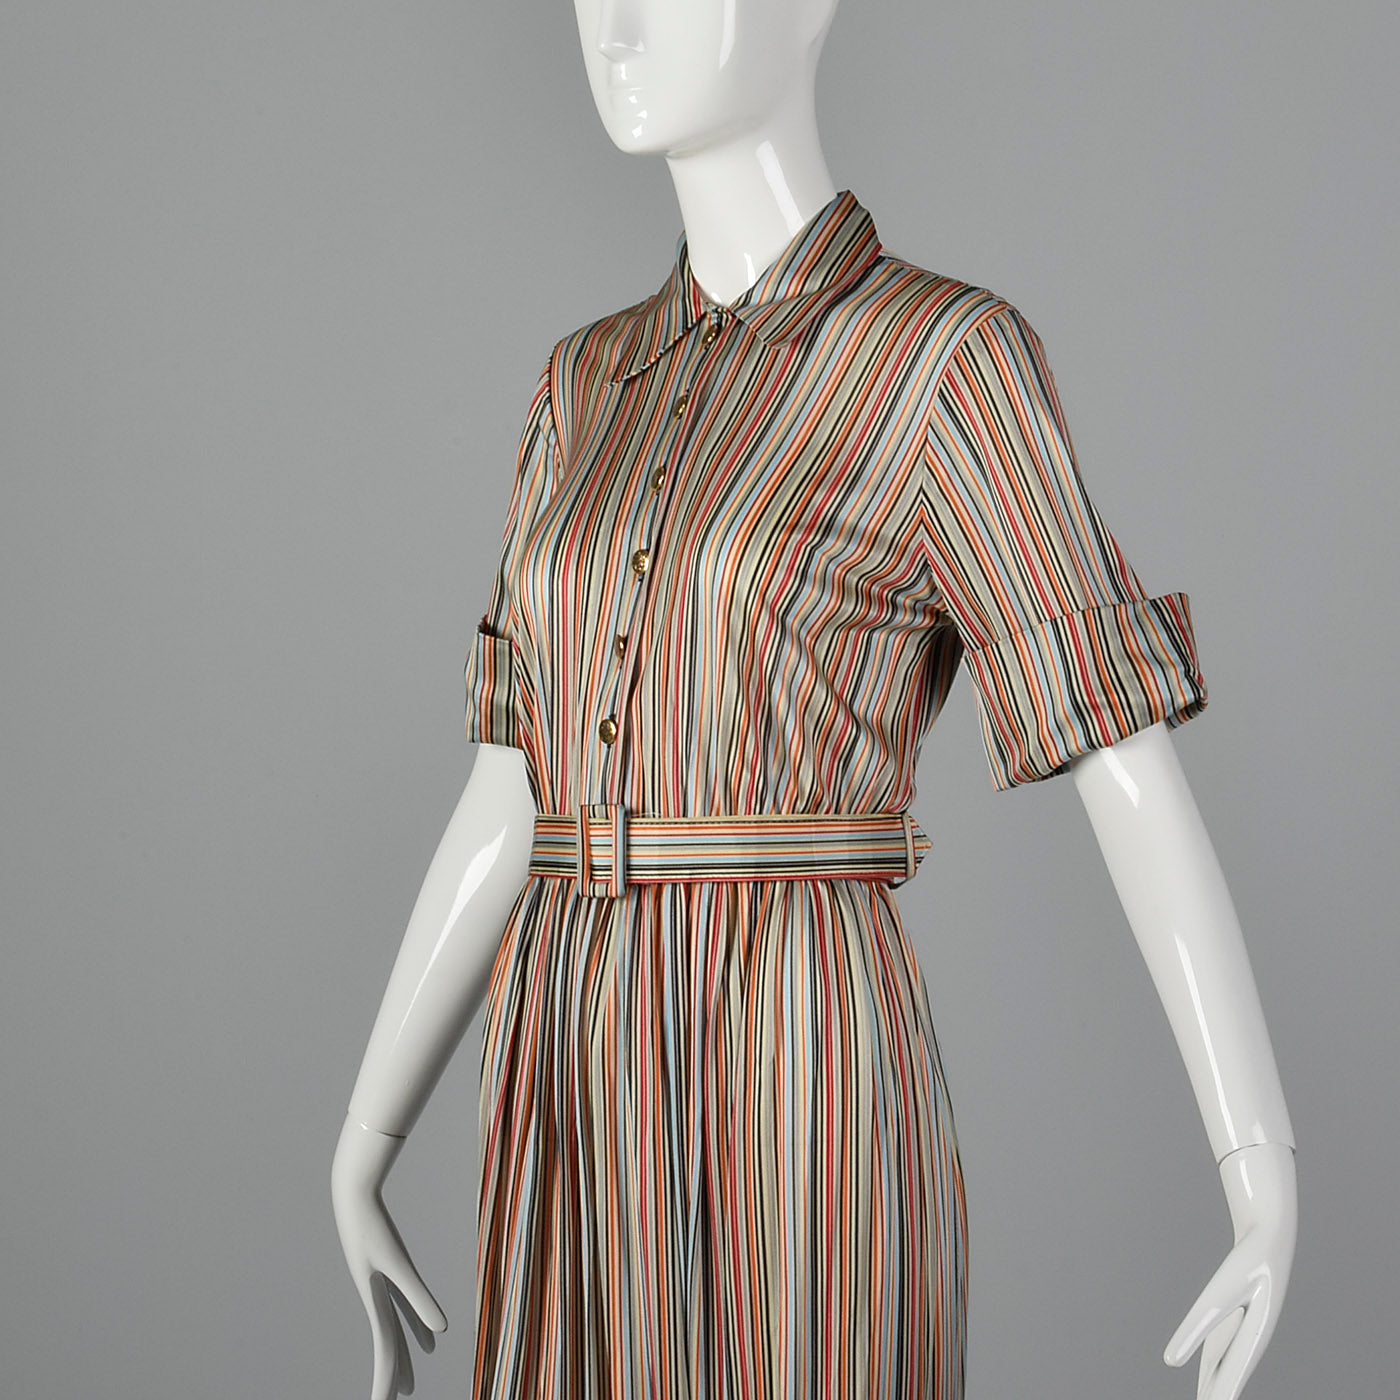 1940s Silky Knit Stripe Dress with Monogram Buttons